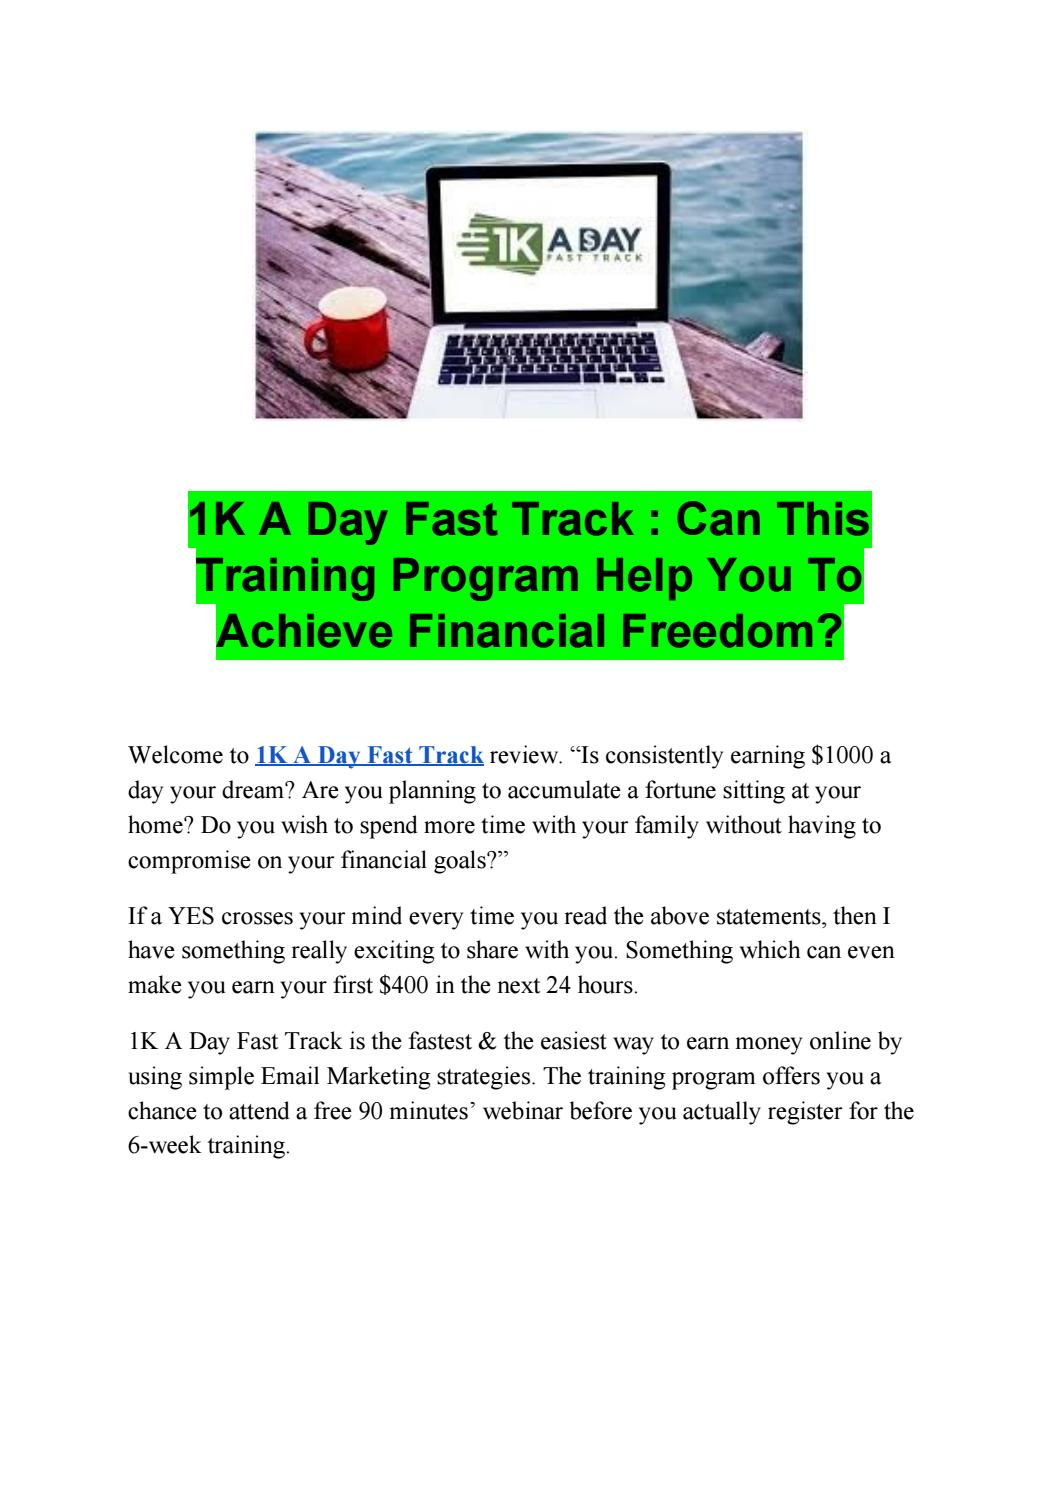 1k A Day Fast Track Training Program For Sale On Ebay